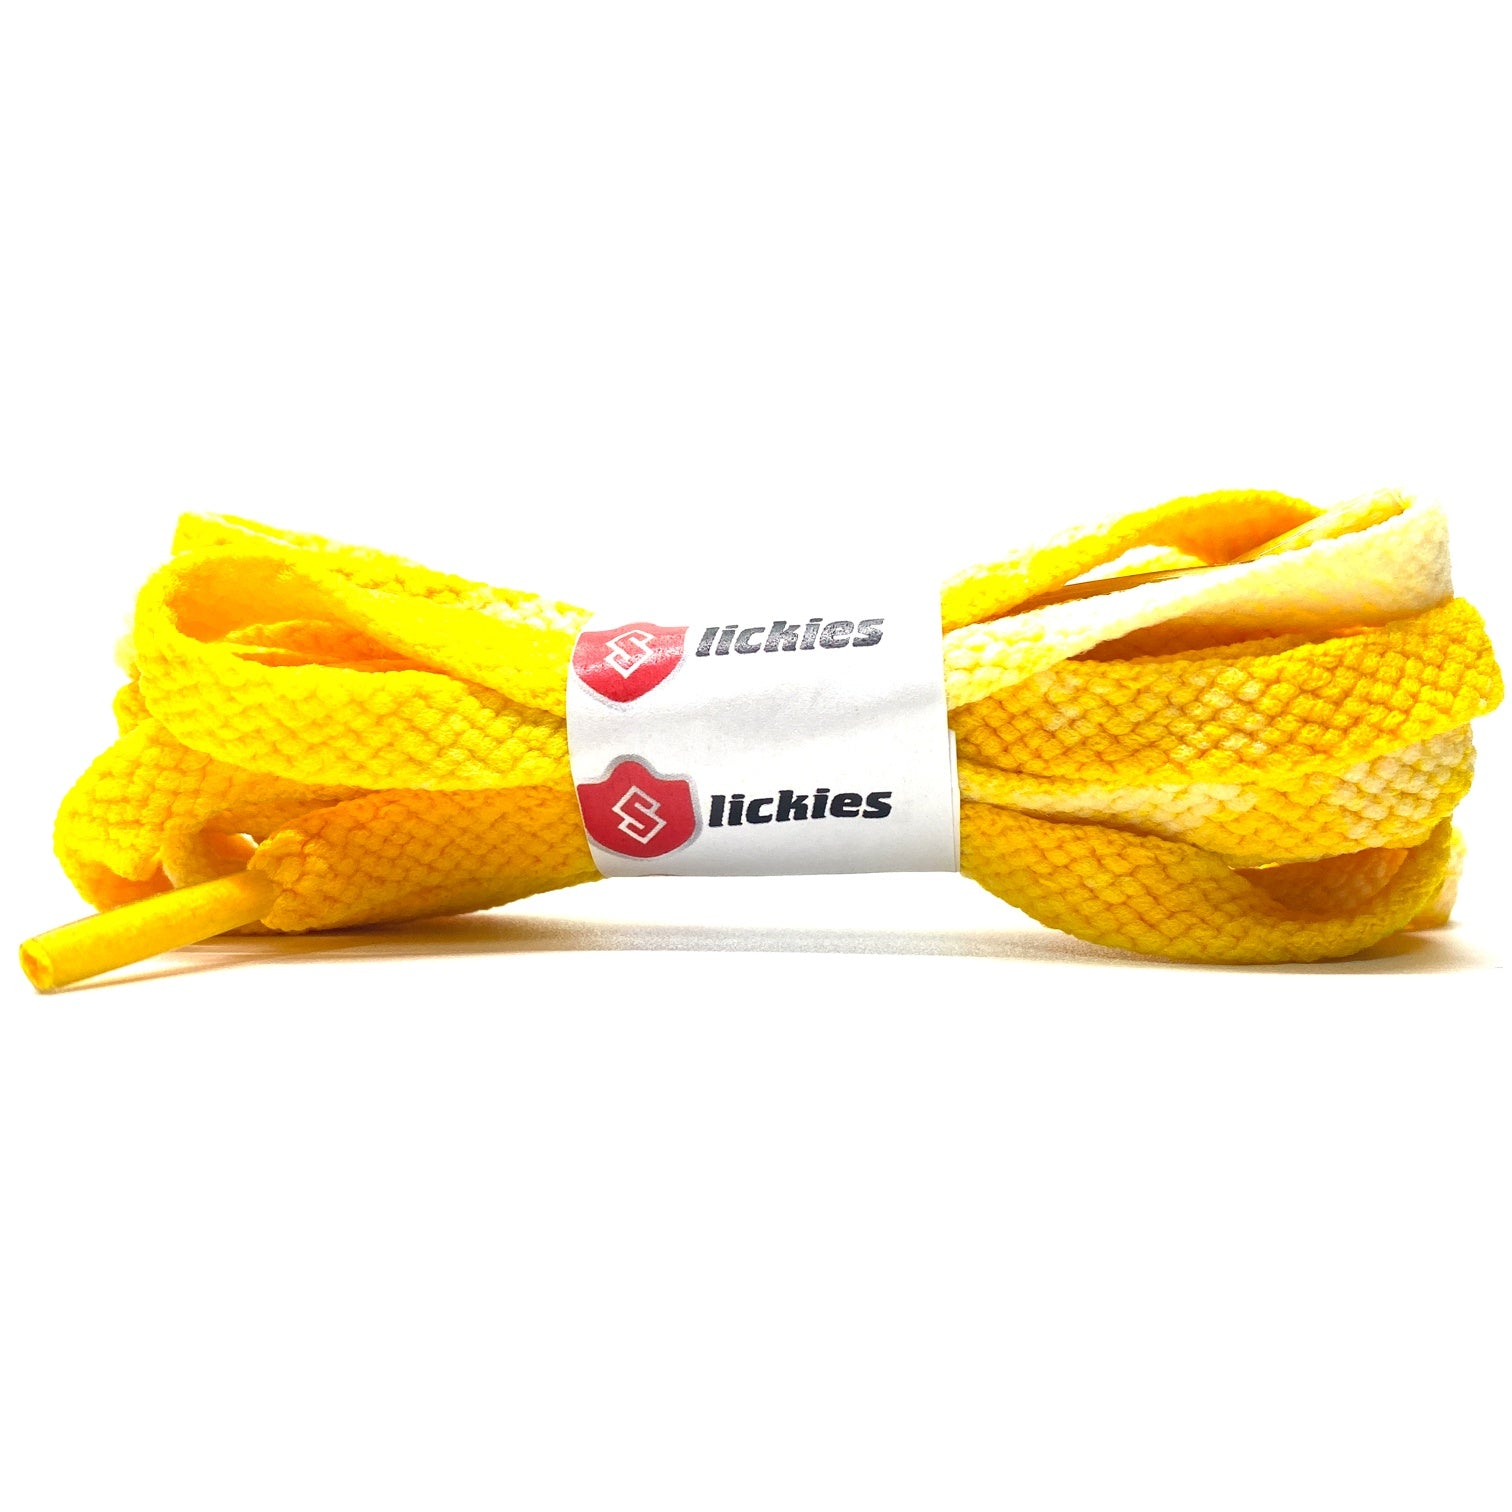 Tie Dye Flat Laces - Vintage Faded Maize Yellow For Air Jordan 1